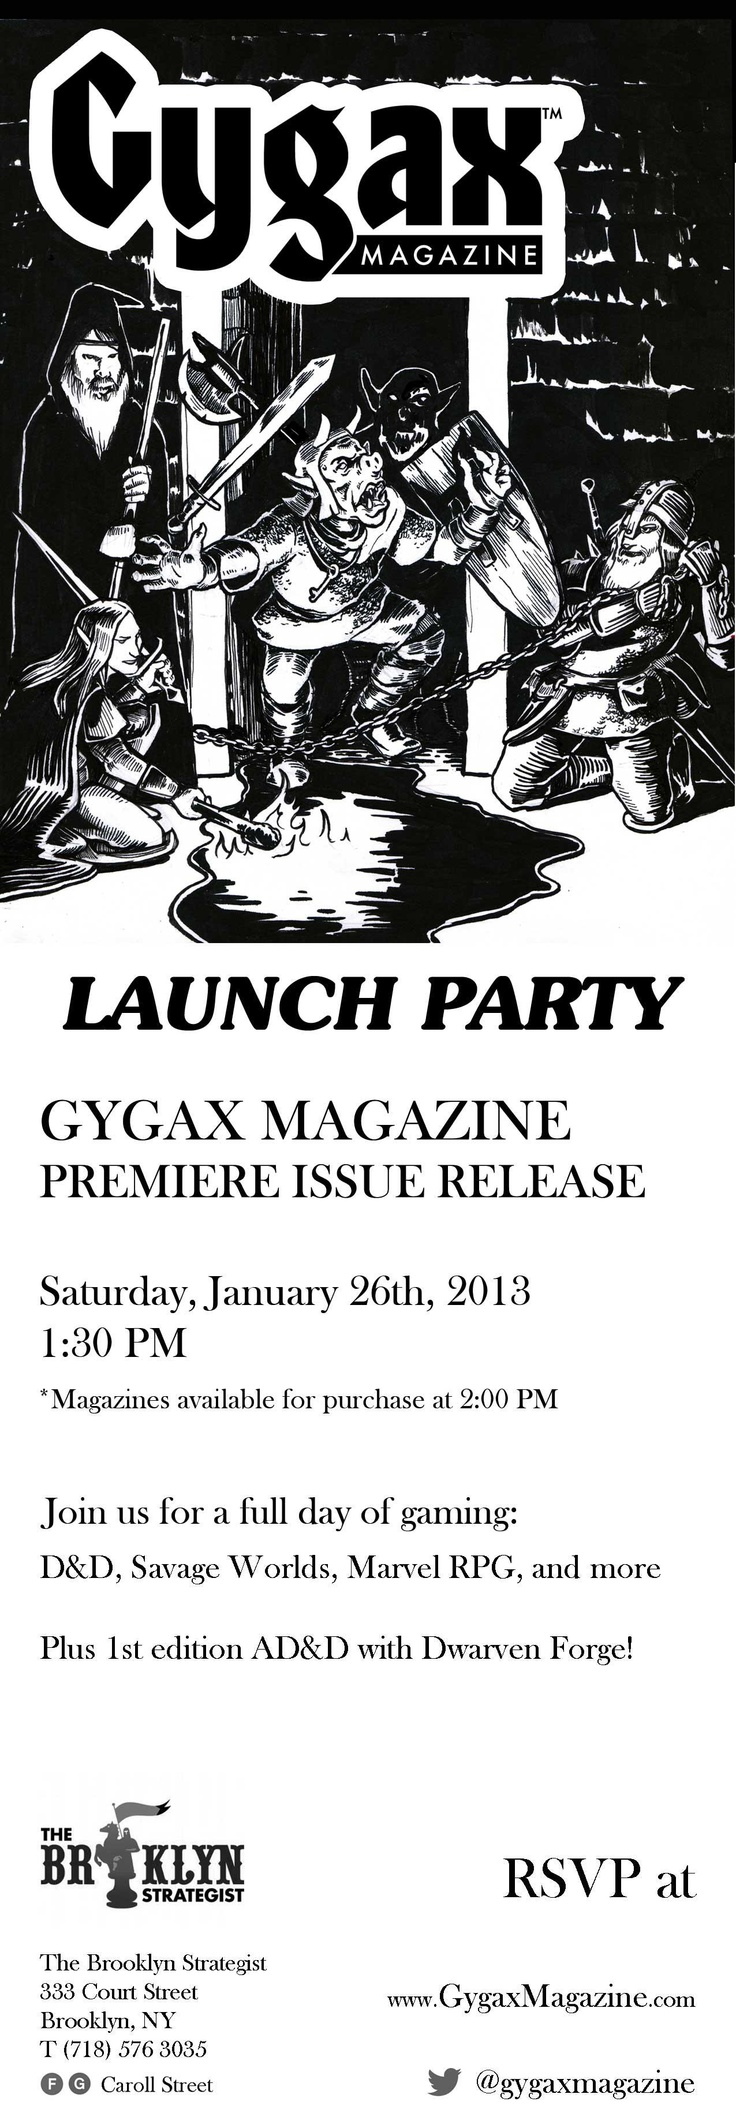 Gygax Magazine launch party. Saturday, Janurary 26, 2013 @ 2:00 PM EST. Watch the online streaming event at http://gygaxmagazine.com/ or if you're in the Brooklyn area RSVP via the website and stop by The Brooklyn Strategist, 333 Court St., Brooklyn, NY. #Dungeons #Dragons #DnD #Magazine #Gaming #RPG #Role #Playing #TSR